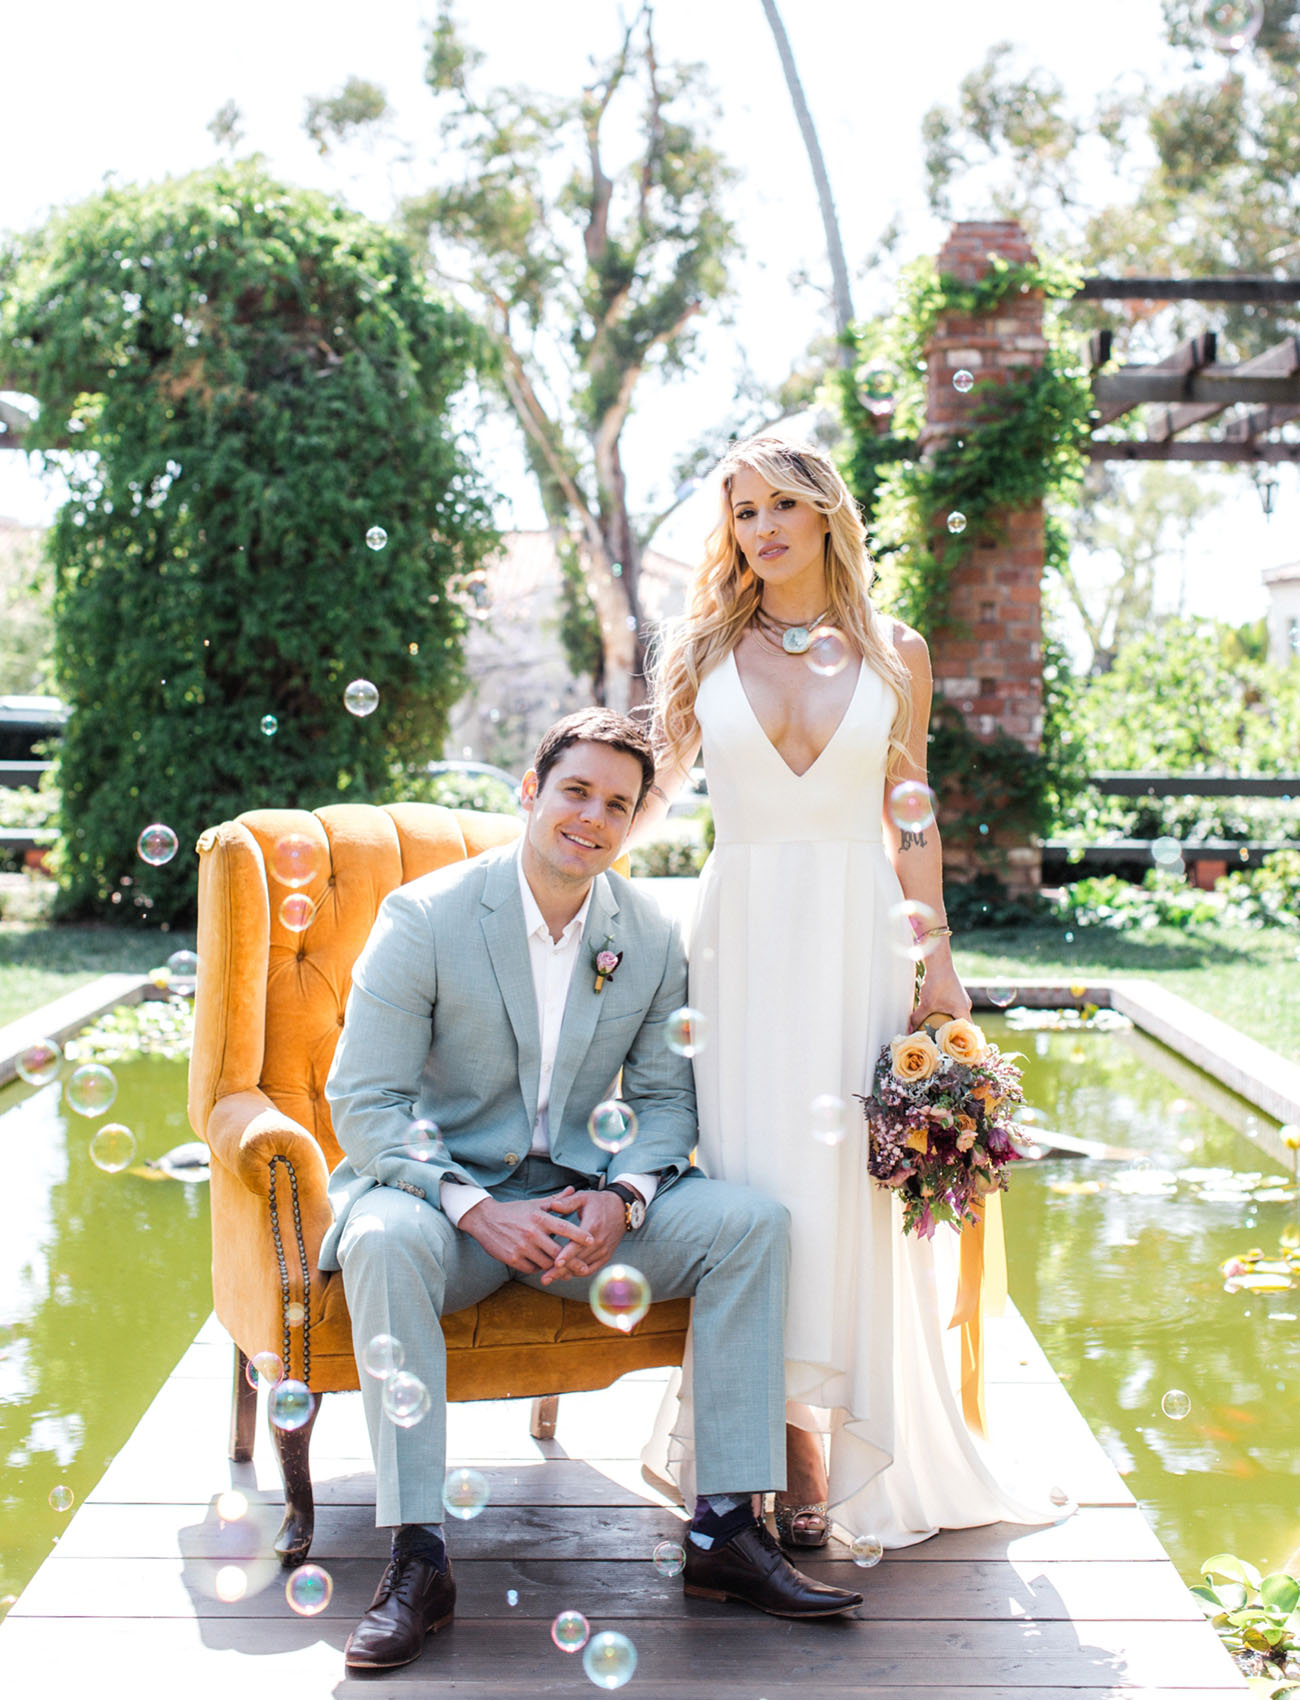 The second wedding dress was high low, with a plunging neckline and wide straps, the groom was wearing a light grey suit